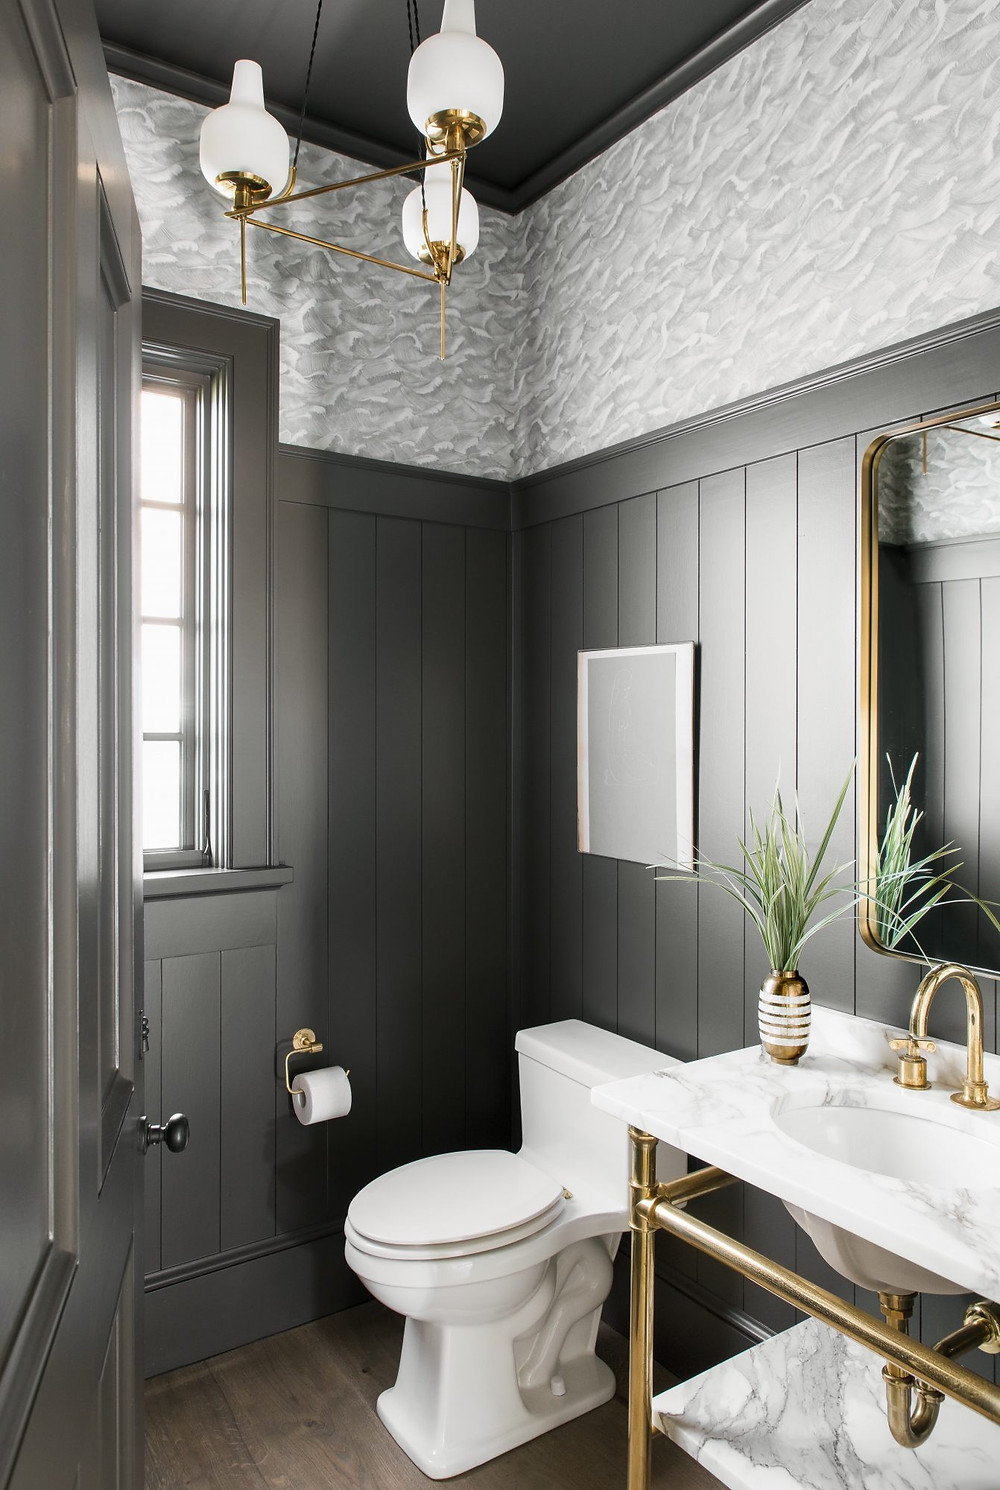 Charming bright and airy Modern Farmhouse Powder Room. Brass Ceiling Pendant. Black Shiplap Walls. Wave Wallpaper. Brass Hardware. Brass and Marble Vanity. Timber Floors.